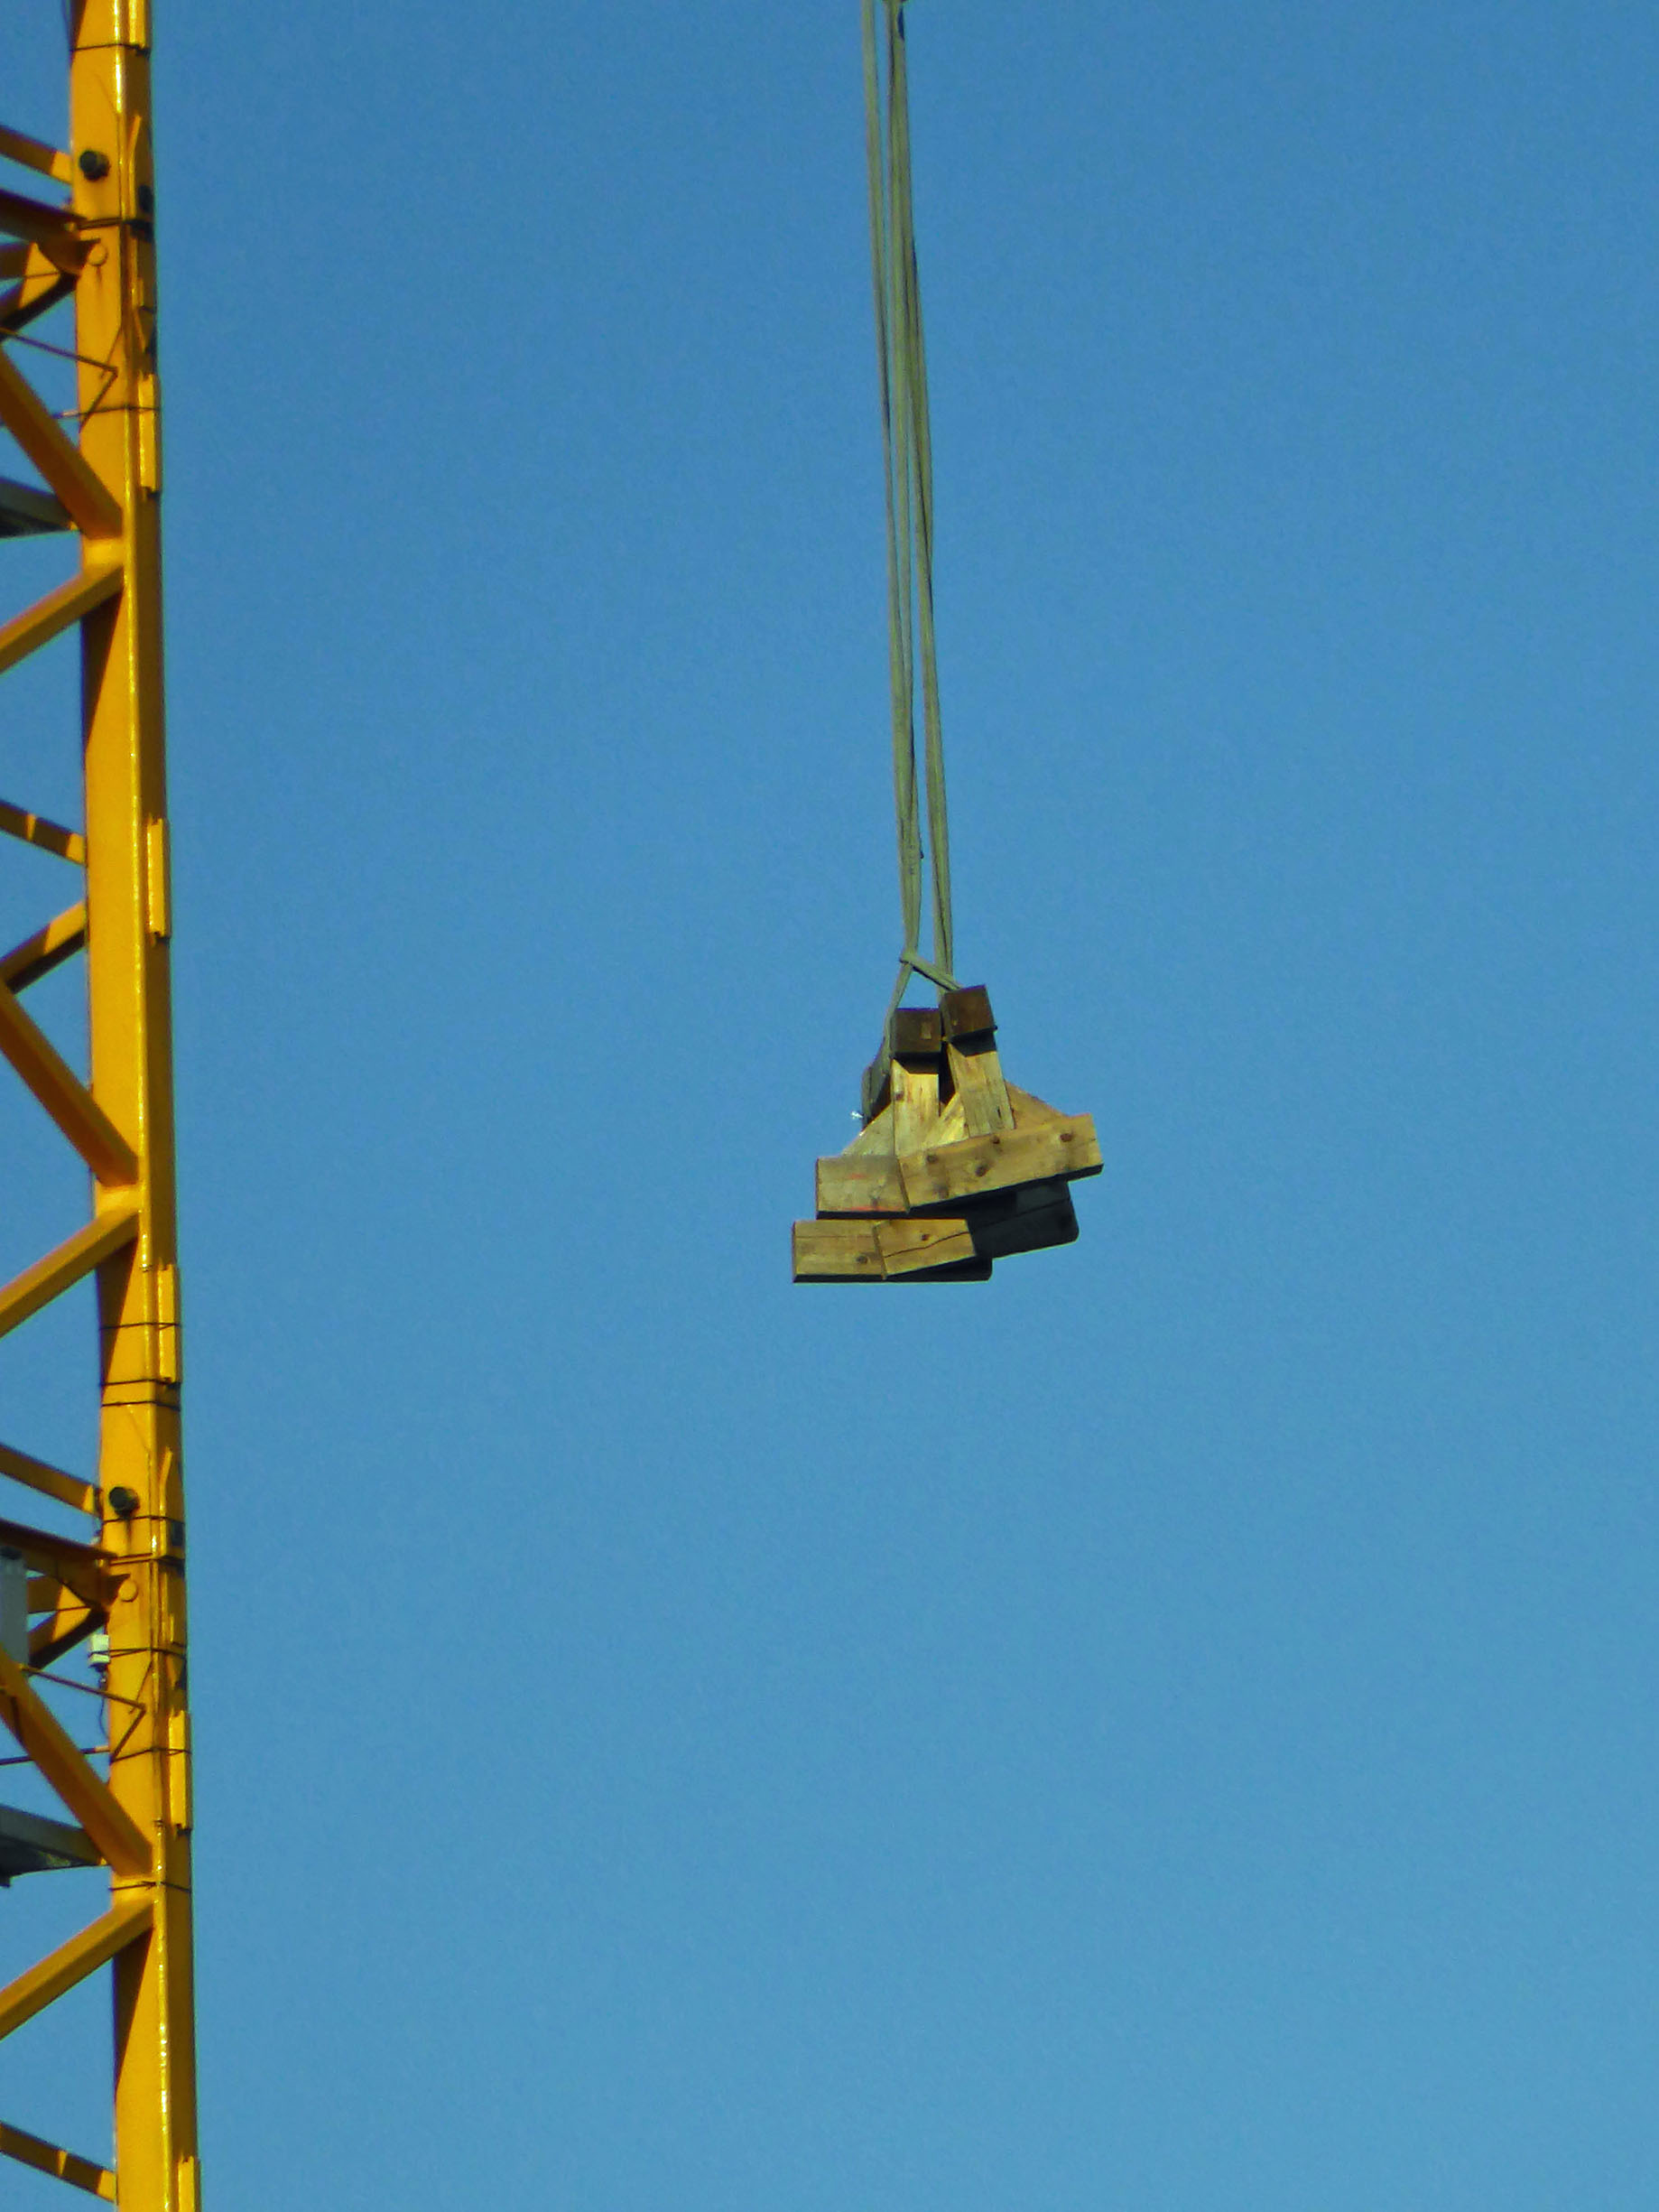 Crane with load of timber